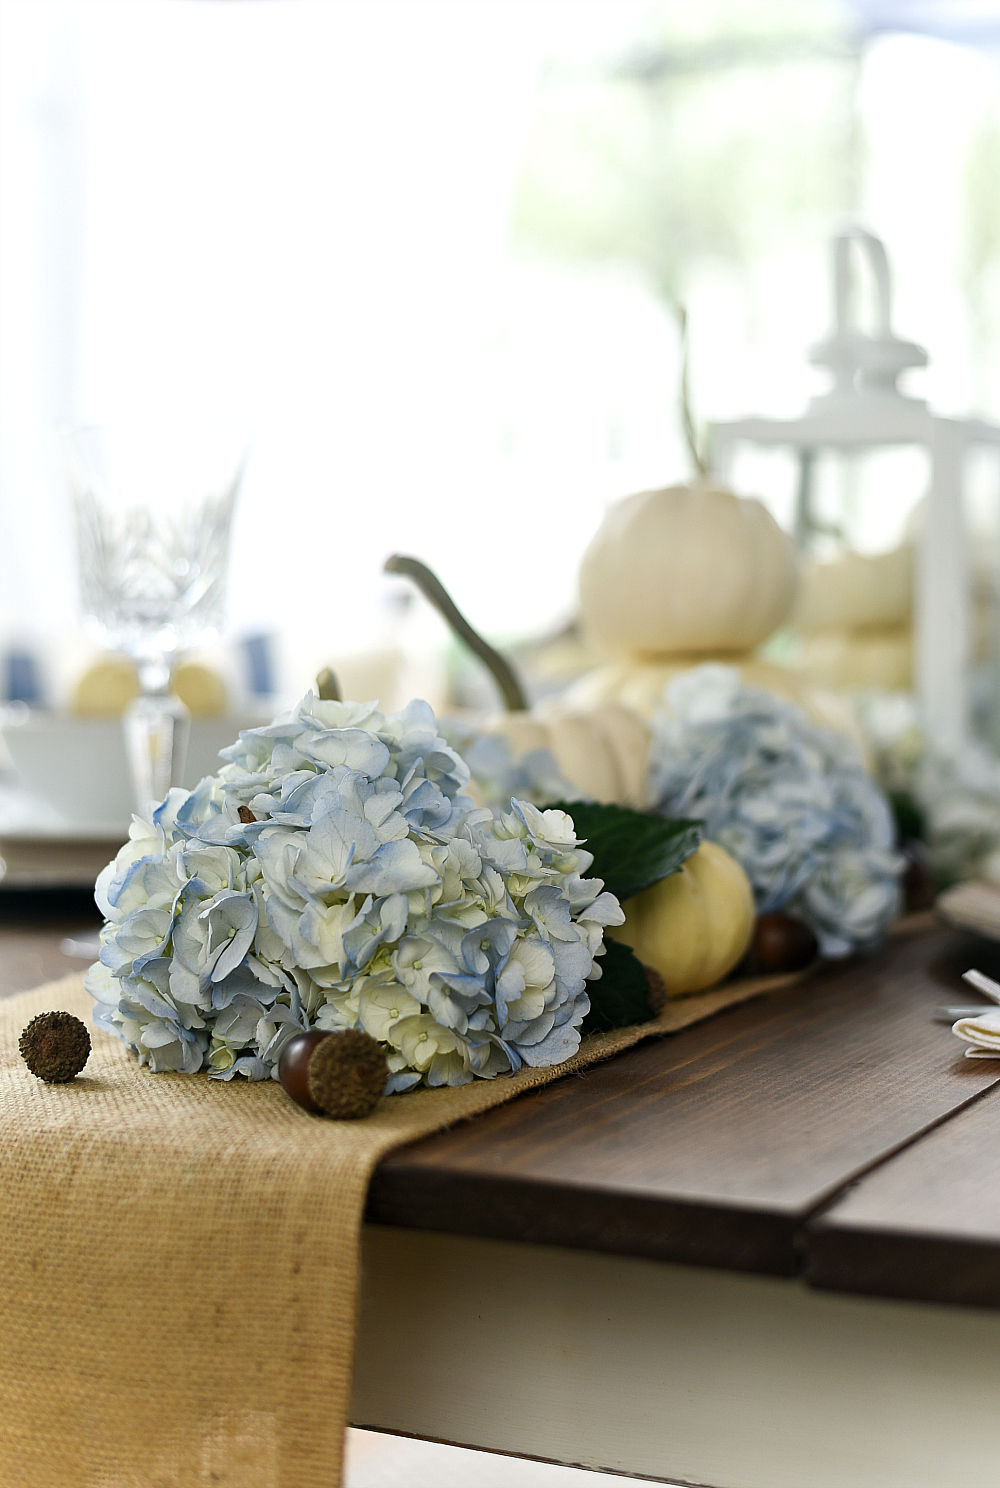 White Pumpkins and Hydrangeas Table Setting for Fall